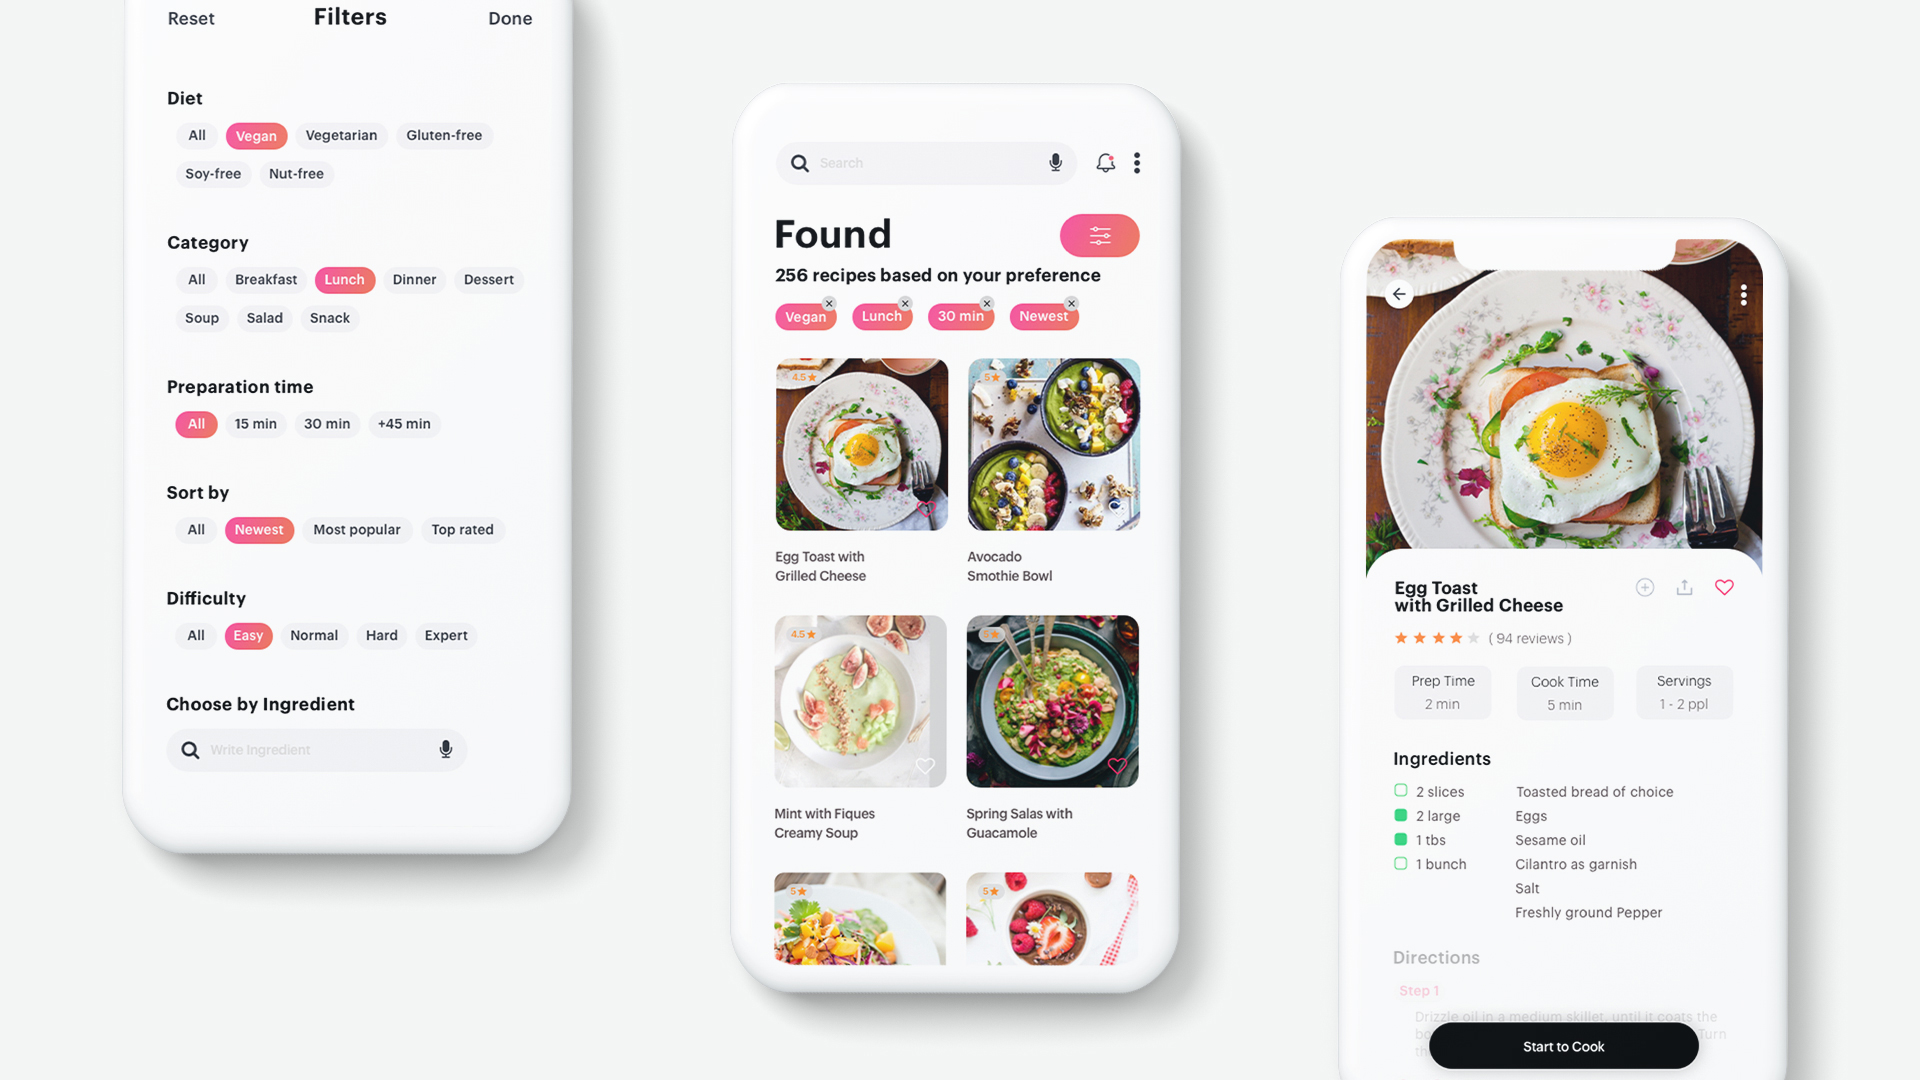 Food App filters, search results, recipe